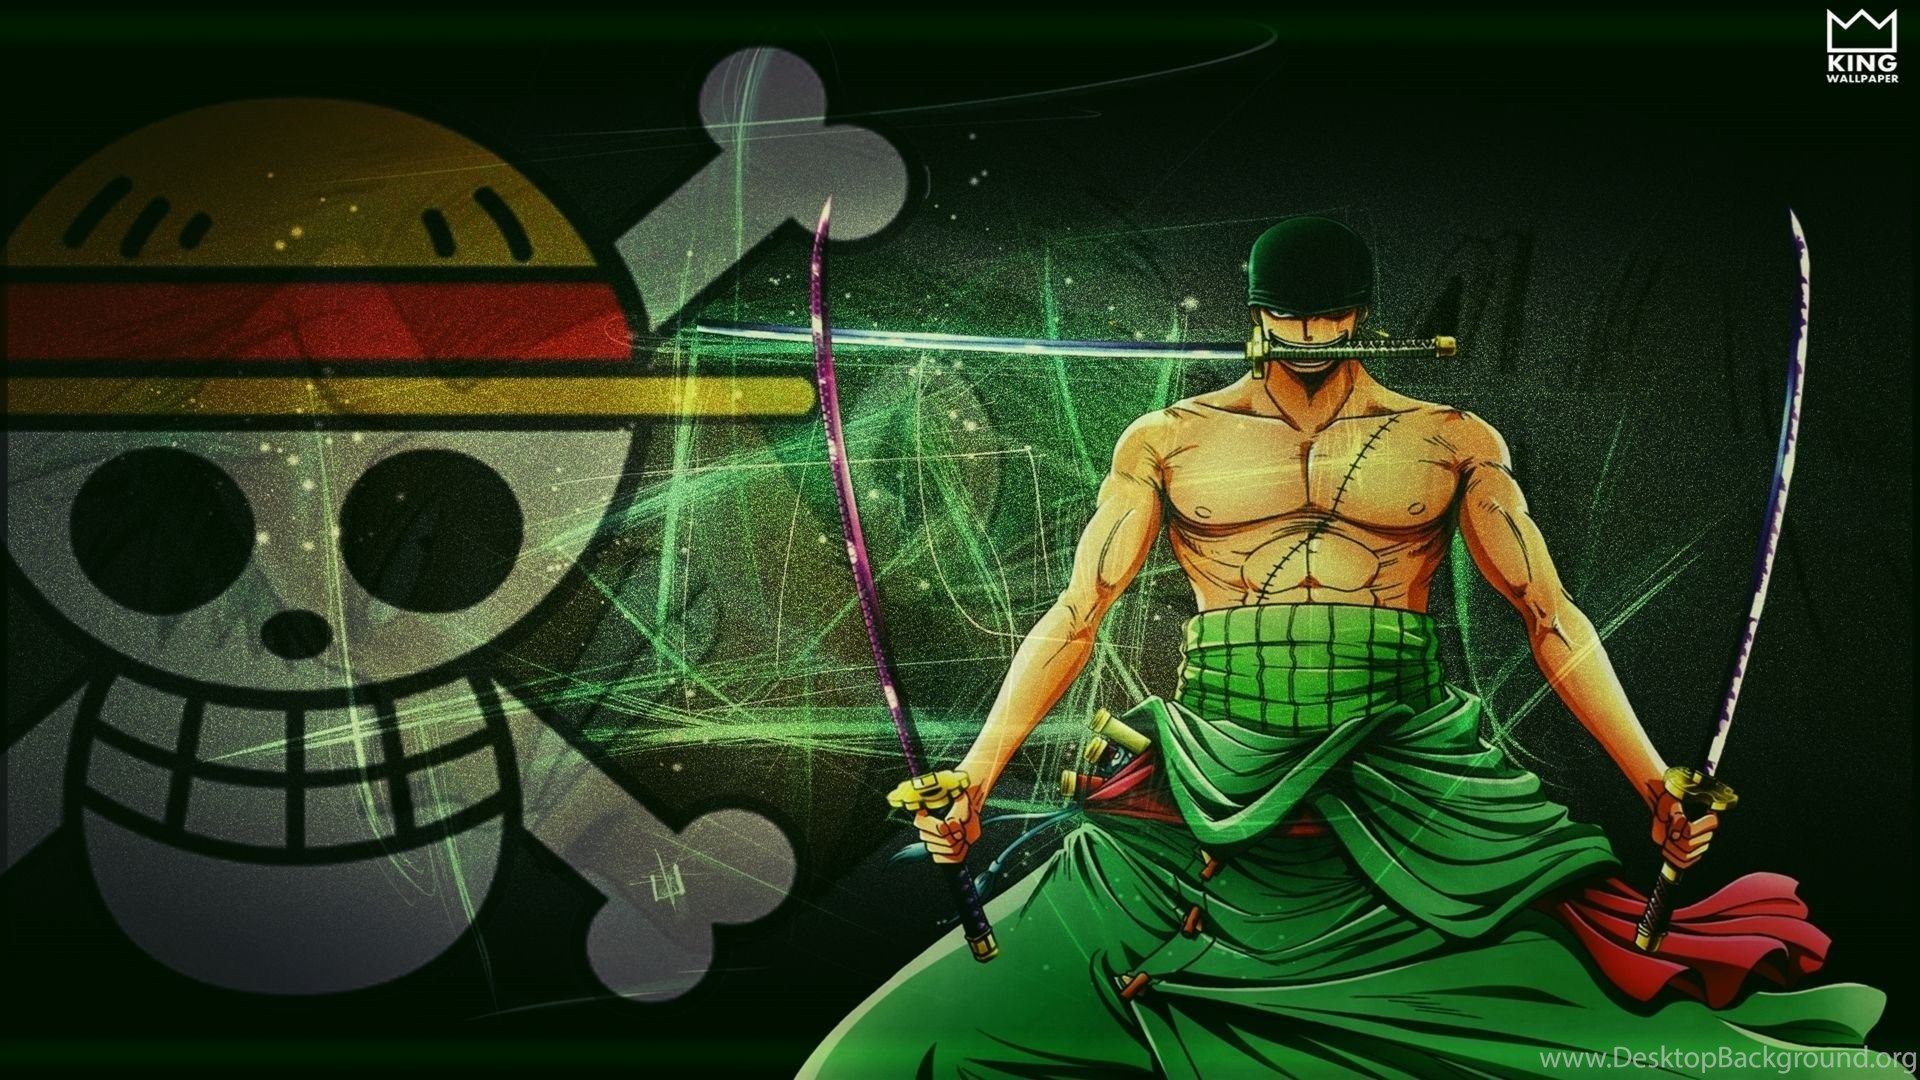 1920x1080 One Piece New World Zoro Computer Wallpapers 10615 HD Wallpapers ...